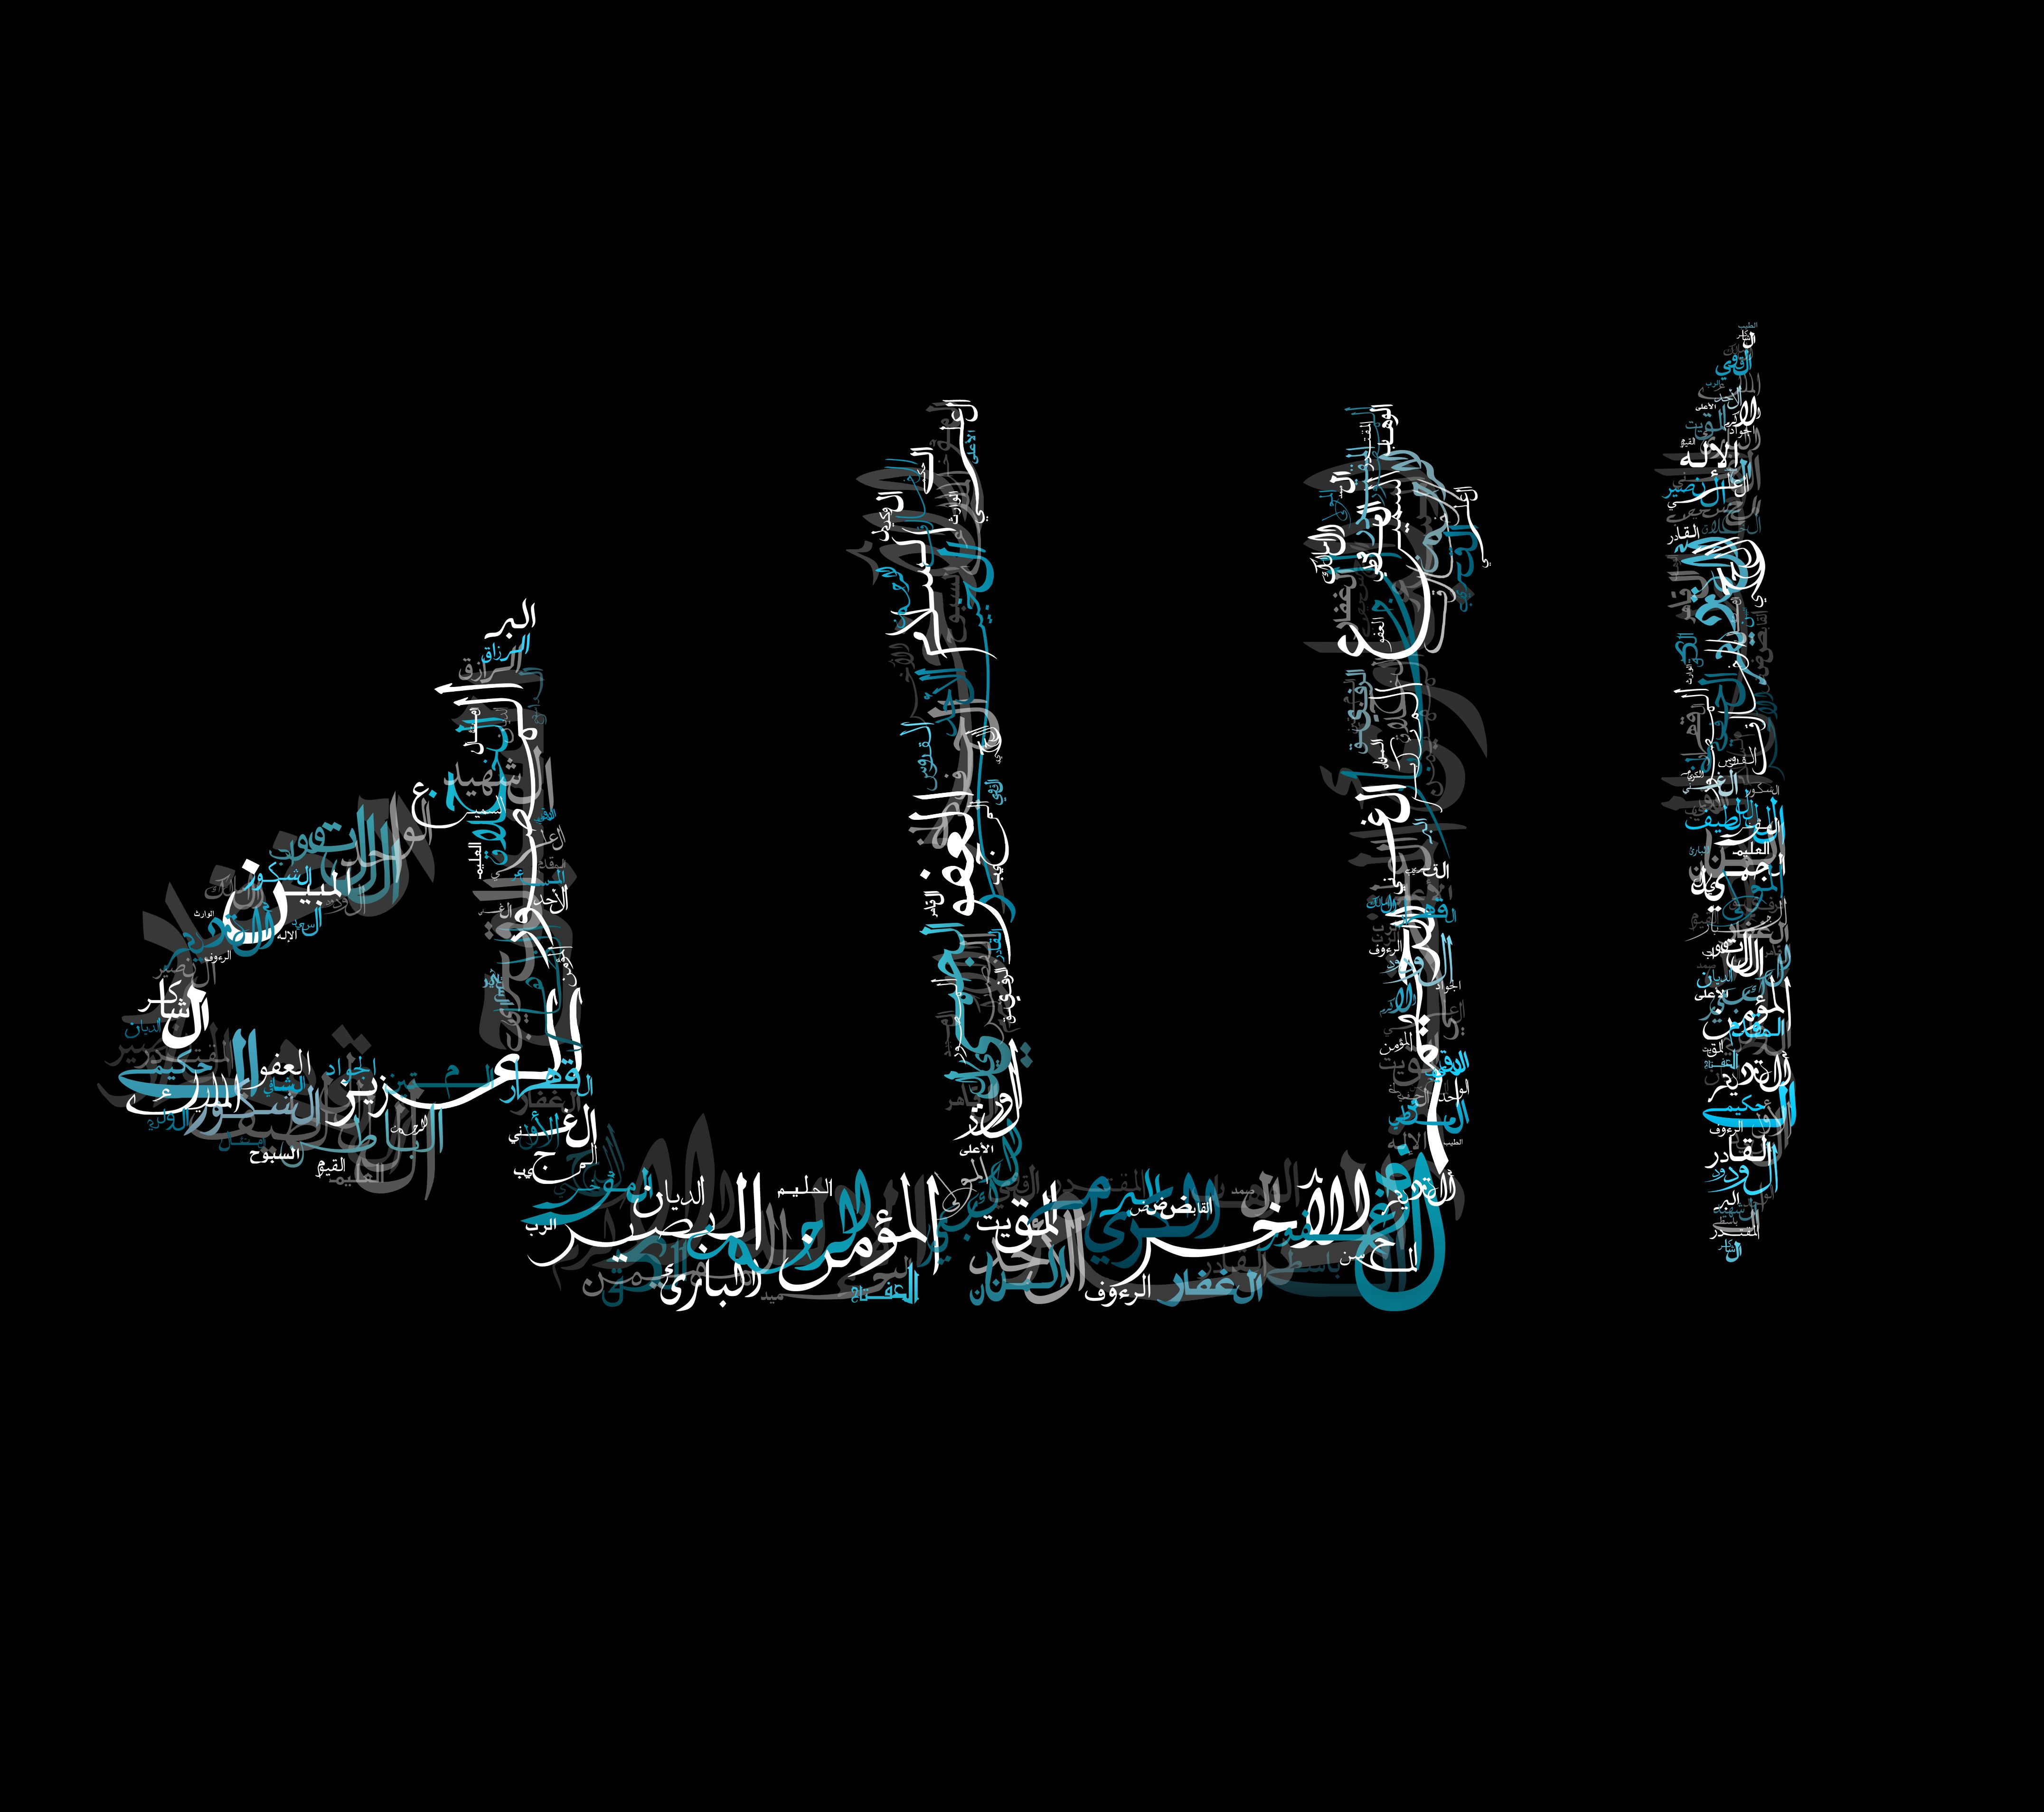 1923447596_6d8637cf7d | prayer times and arabic calligraphy